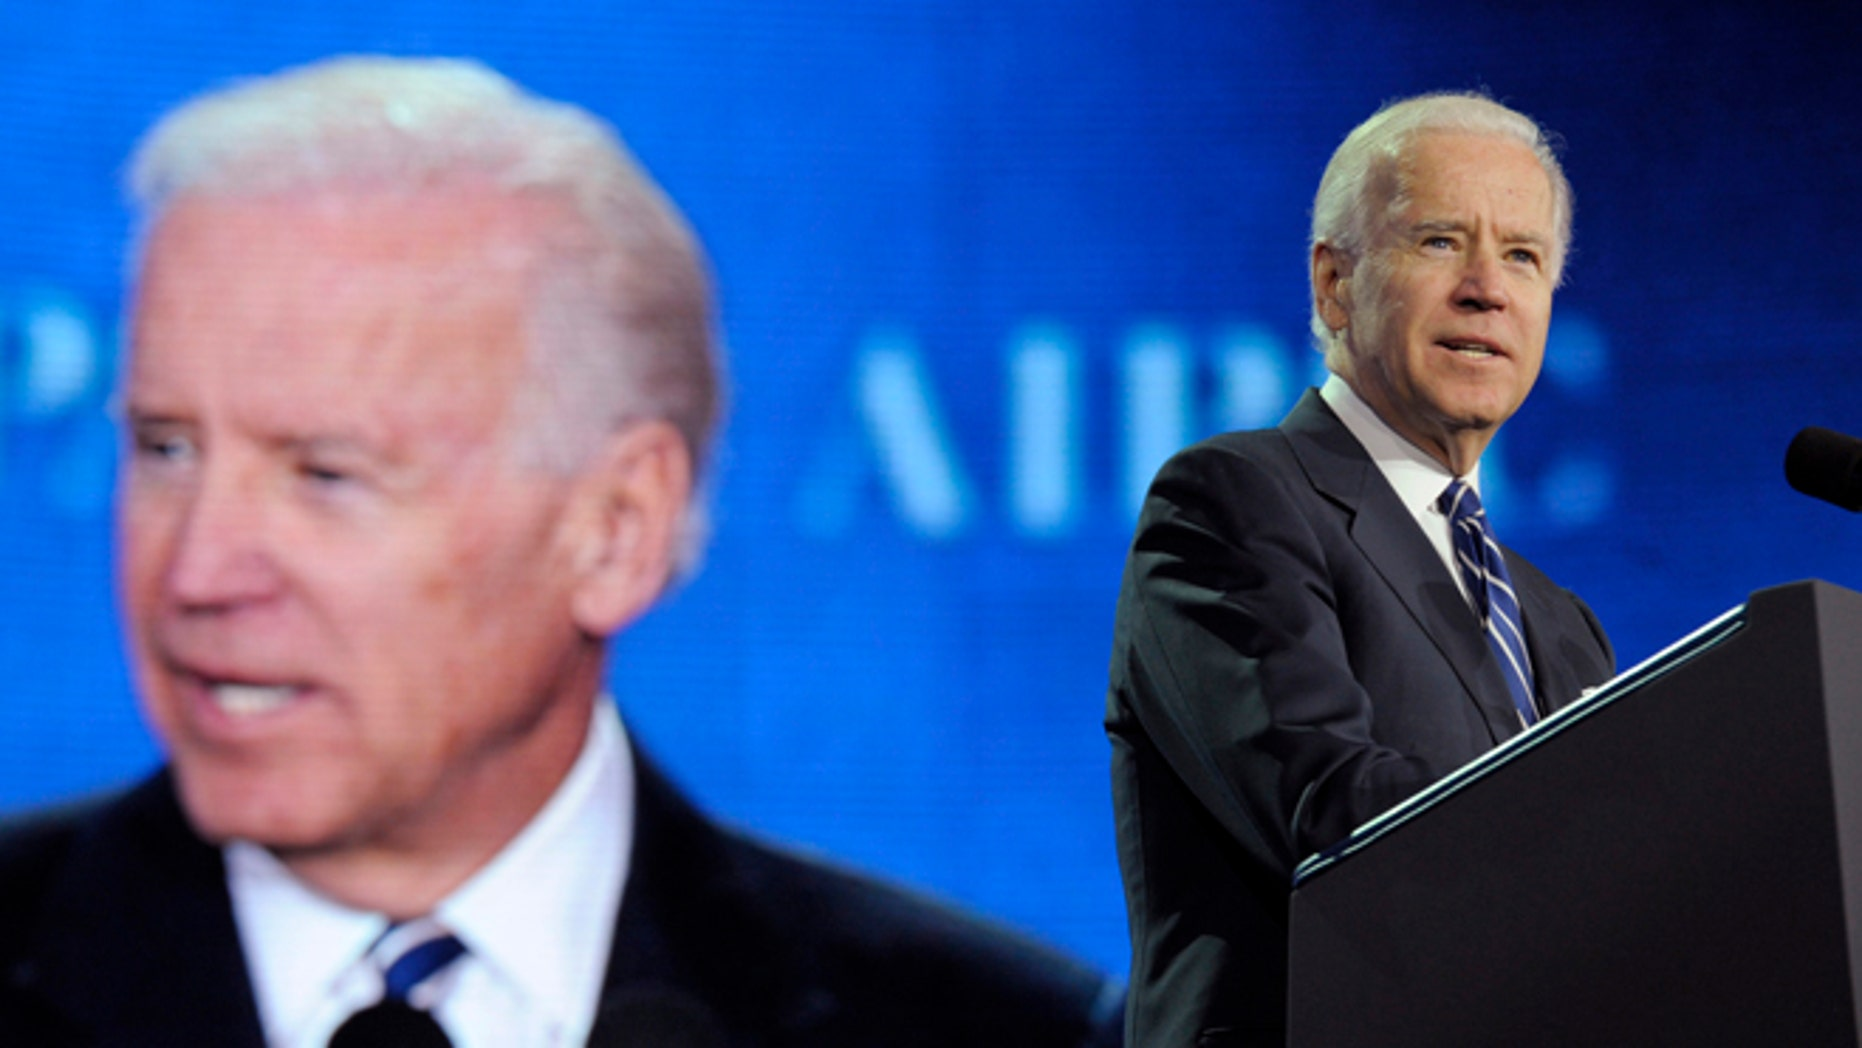 March 4, 2013: Vice President Joe Biden addresses the American-Israeli Public Affairs Committee (AIPAC) 2013 Policy Conference in Washington.